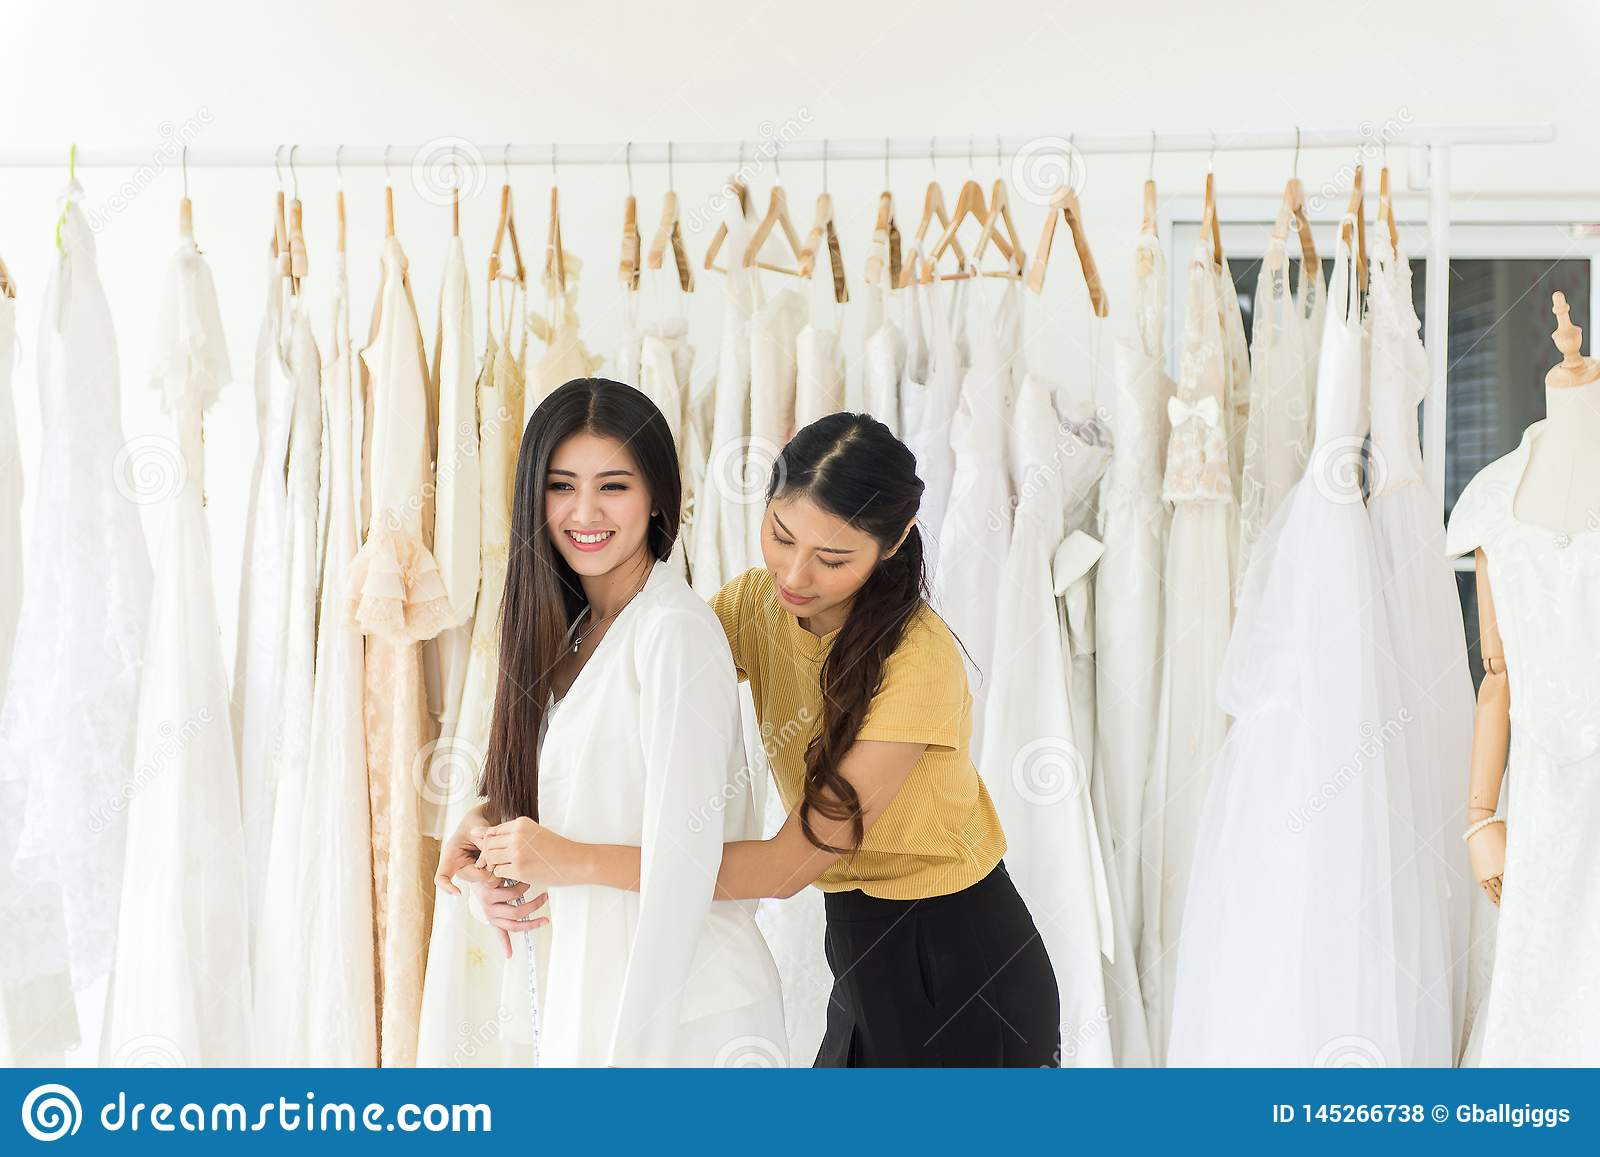 Asian Female Bride Trying On Wedding Dress Woman Designer Making Adjustment With Measuring Tape In Fashion Studio Stock Photo Image Of Friends Dressmaker 145266738